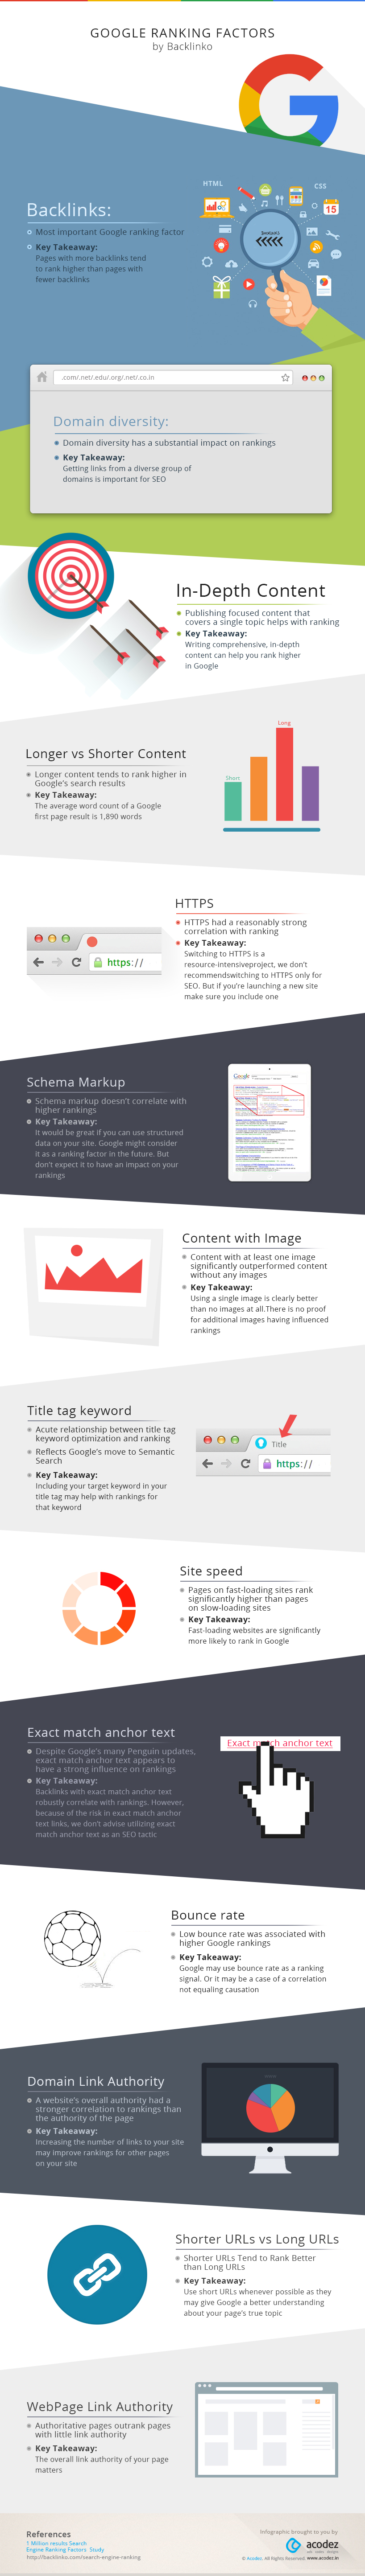 Infographics: Google Ranking Factors by Backlinko